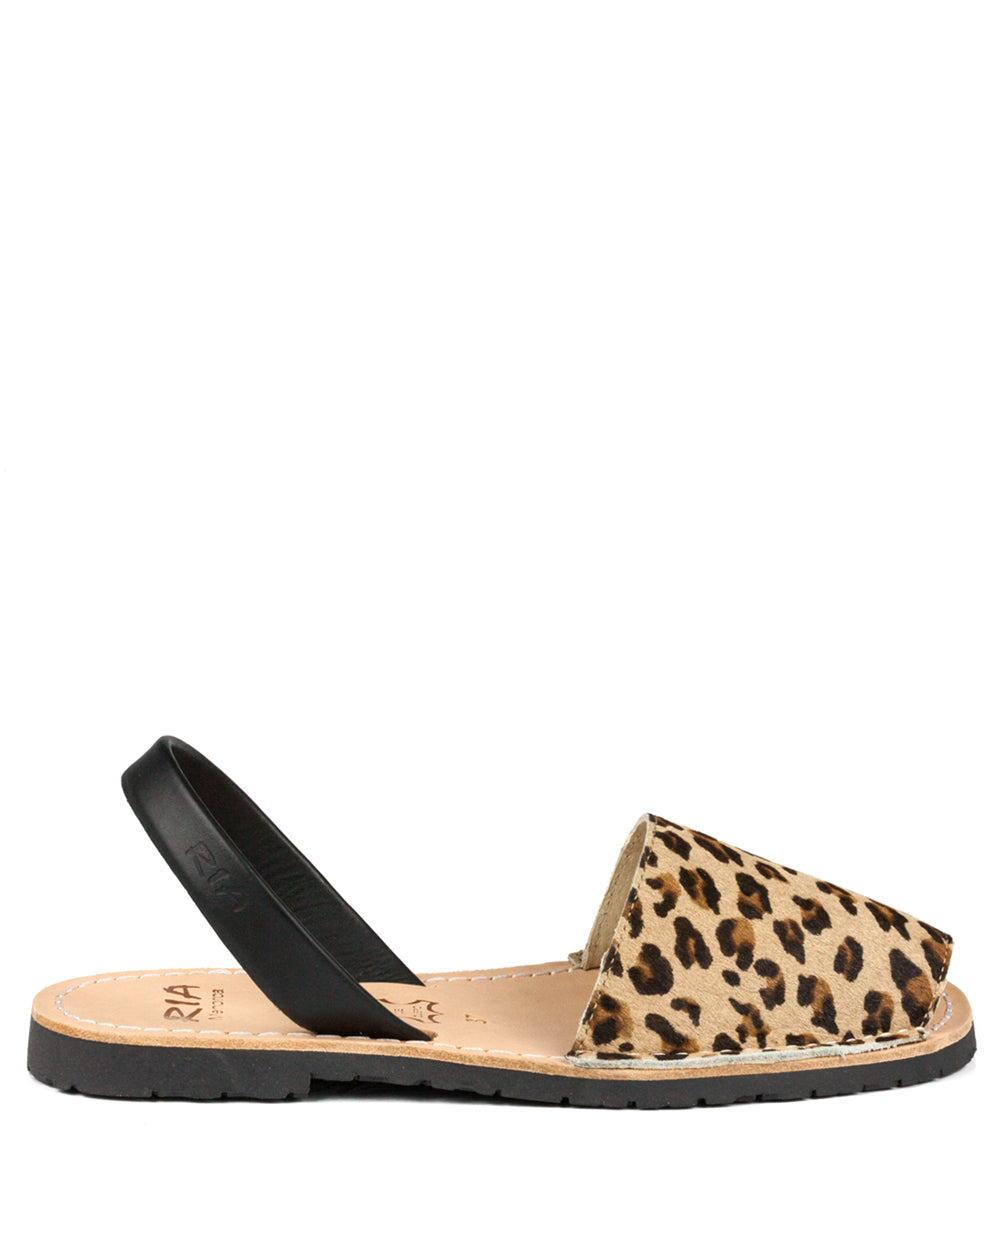 Menorcan Sandals Leopard Leather - The Espadrille Hut